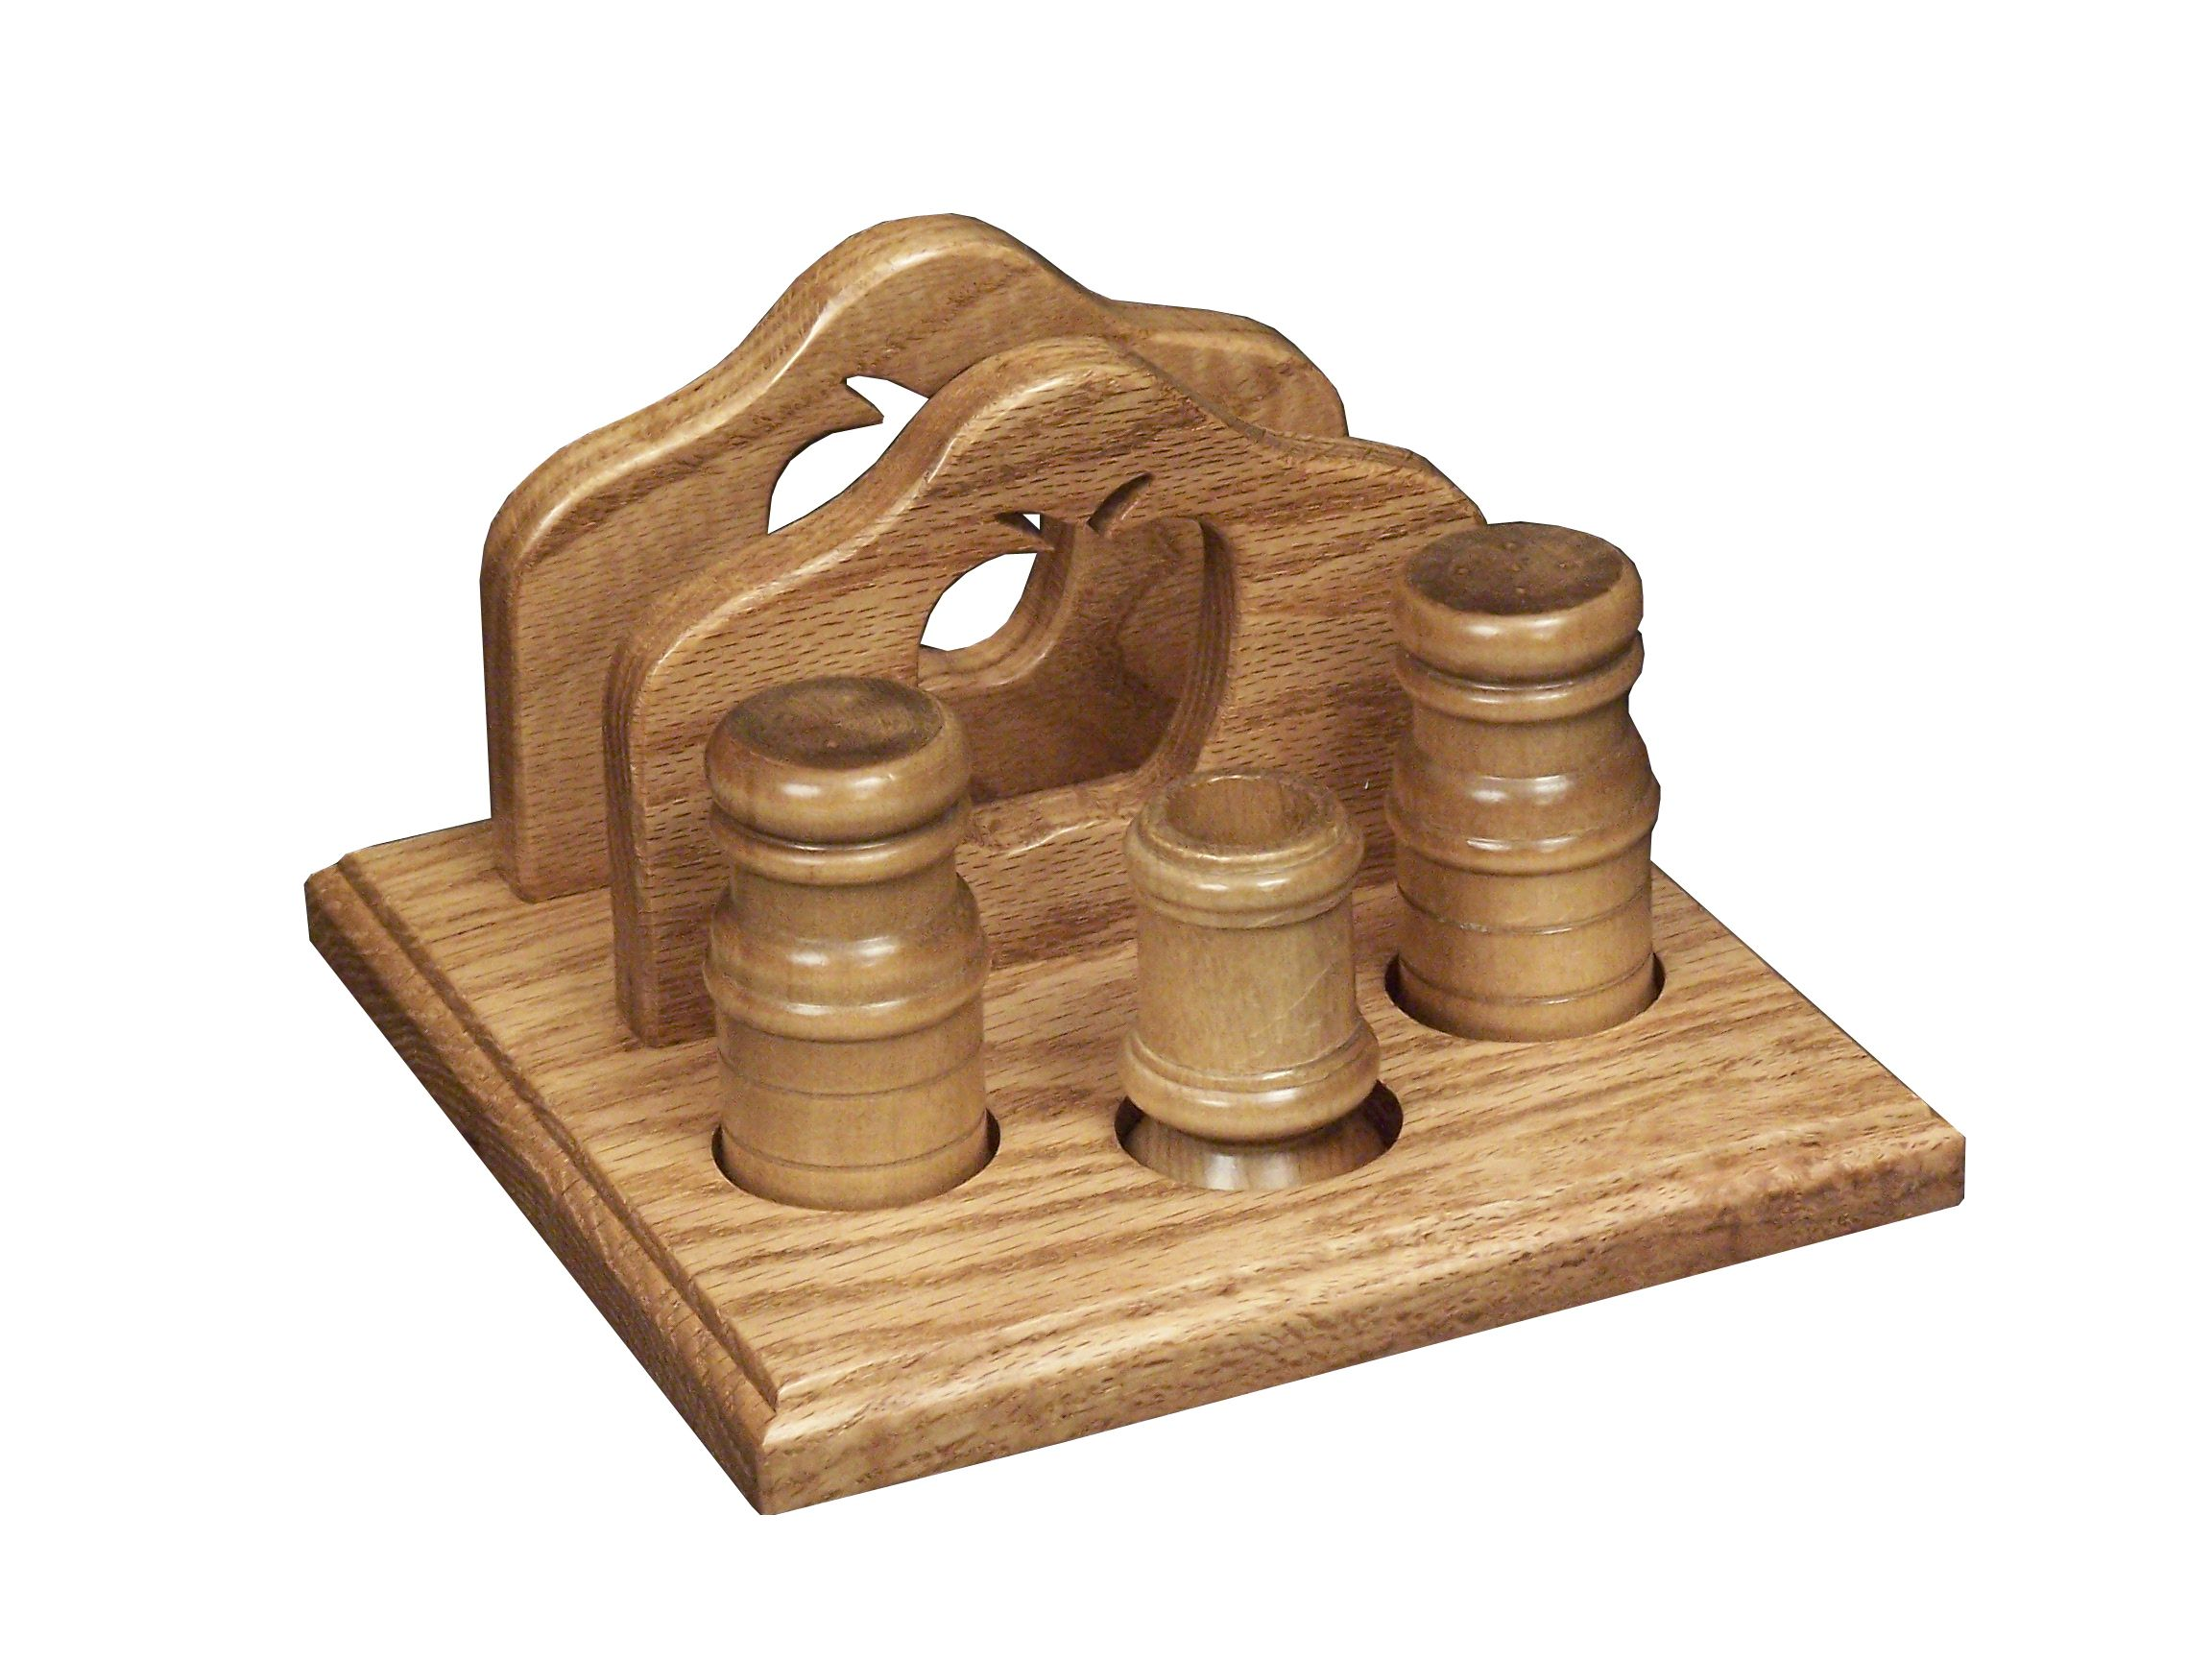 Salt Pepper Holder The Napkin Holder With Apple Design Includes A Salt And